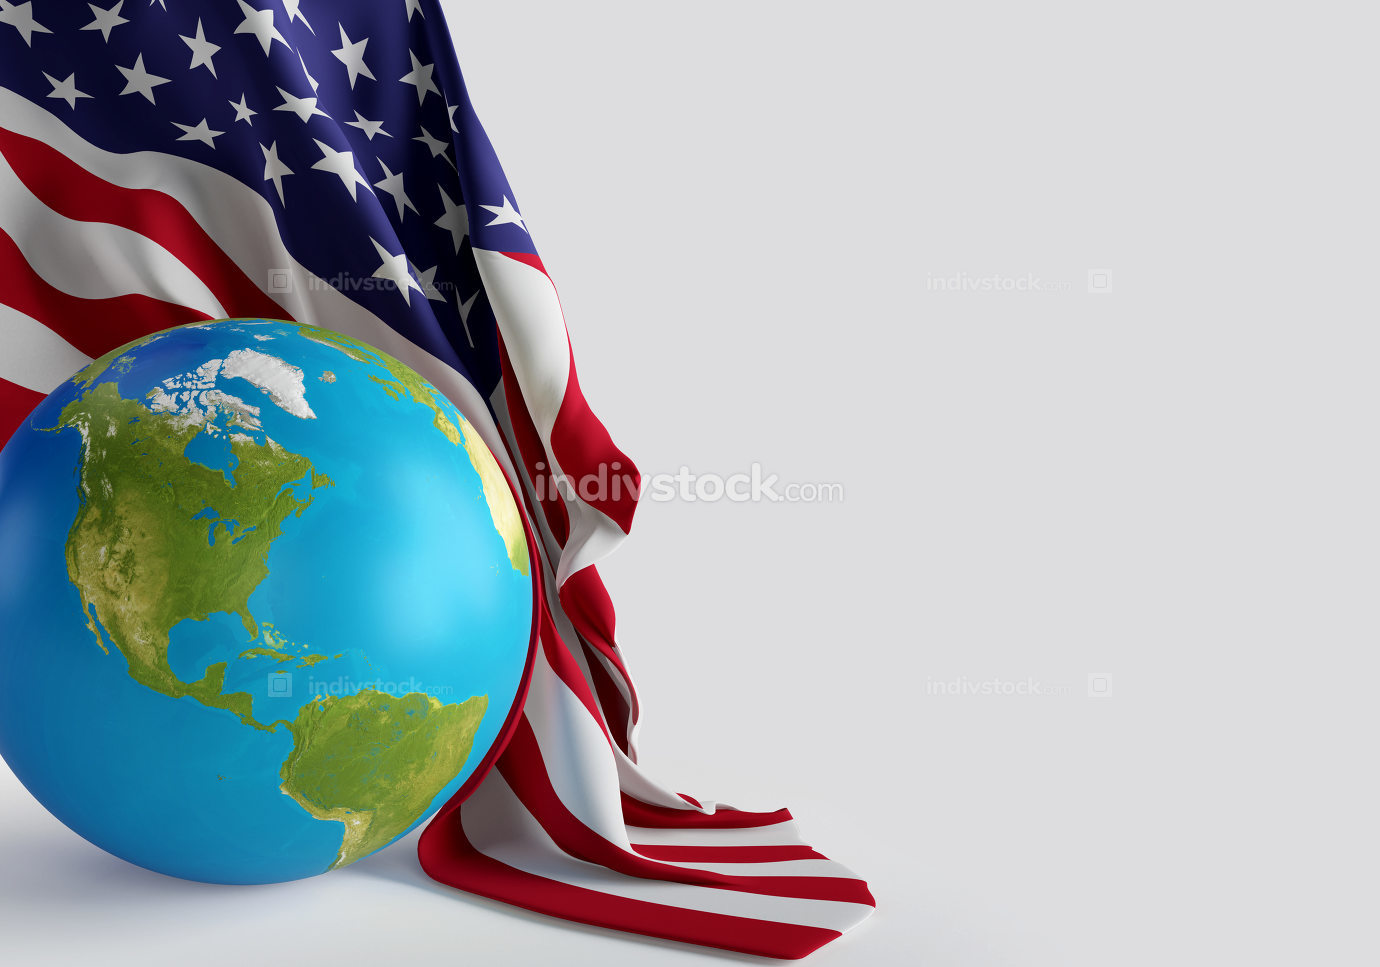 USA United states of America world globe with american flag 3d-i